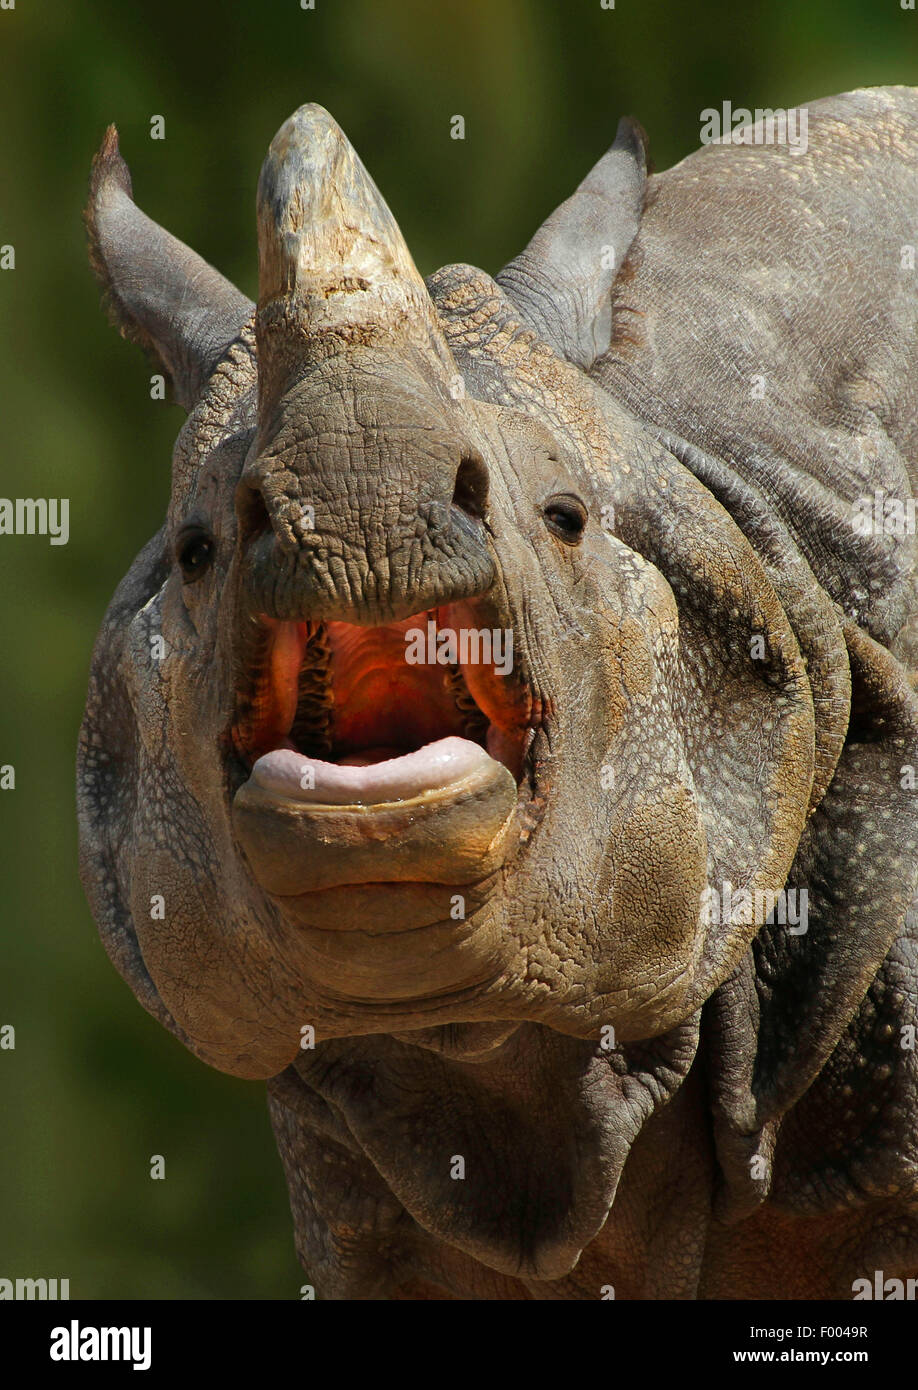 Greater Indian rhinoceros, Great Indian One-horned rhinoceros (Rhinoceros unicornis), portrait with mouth open, - Stock Image